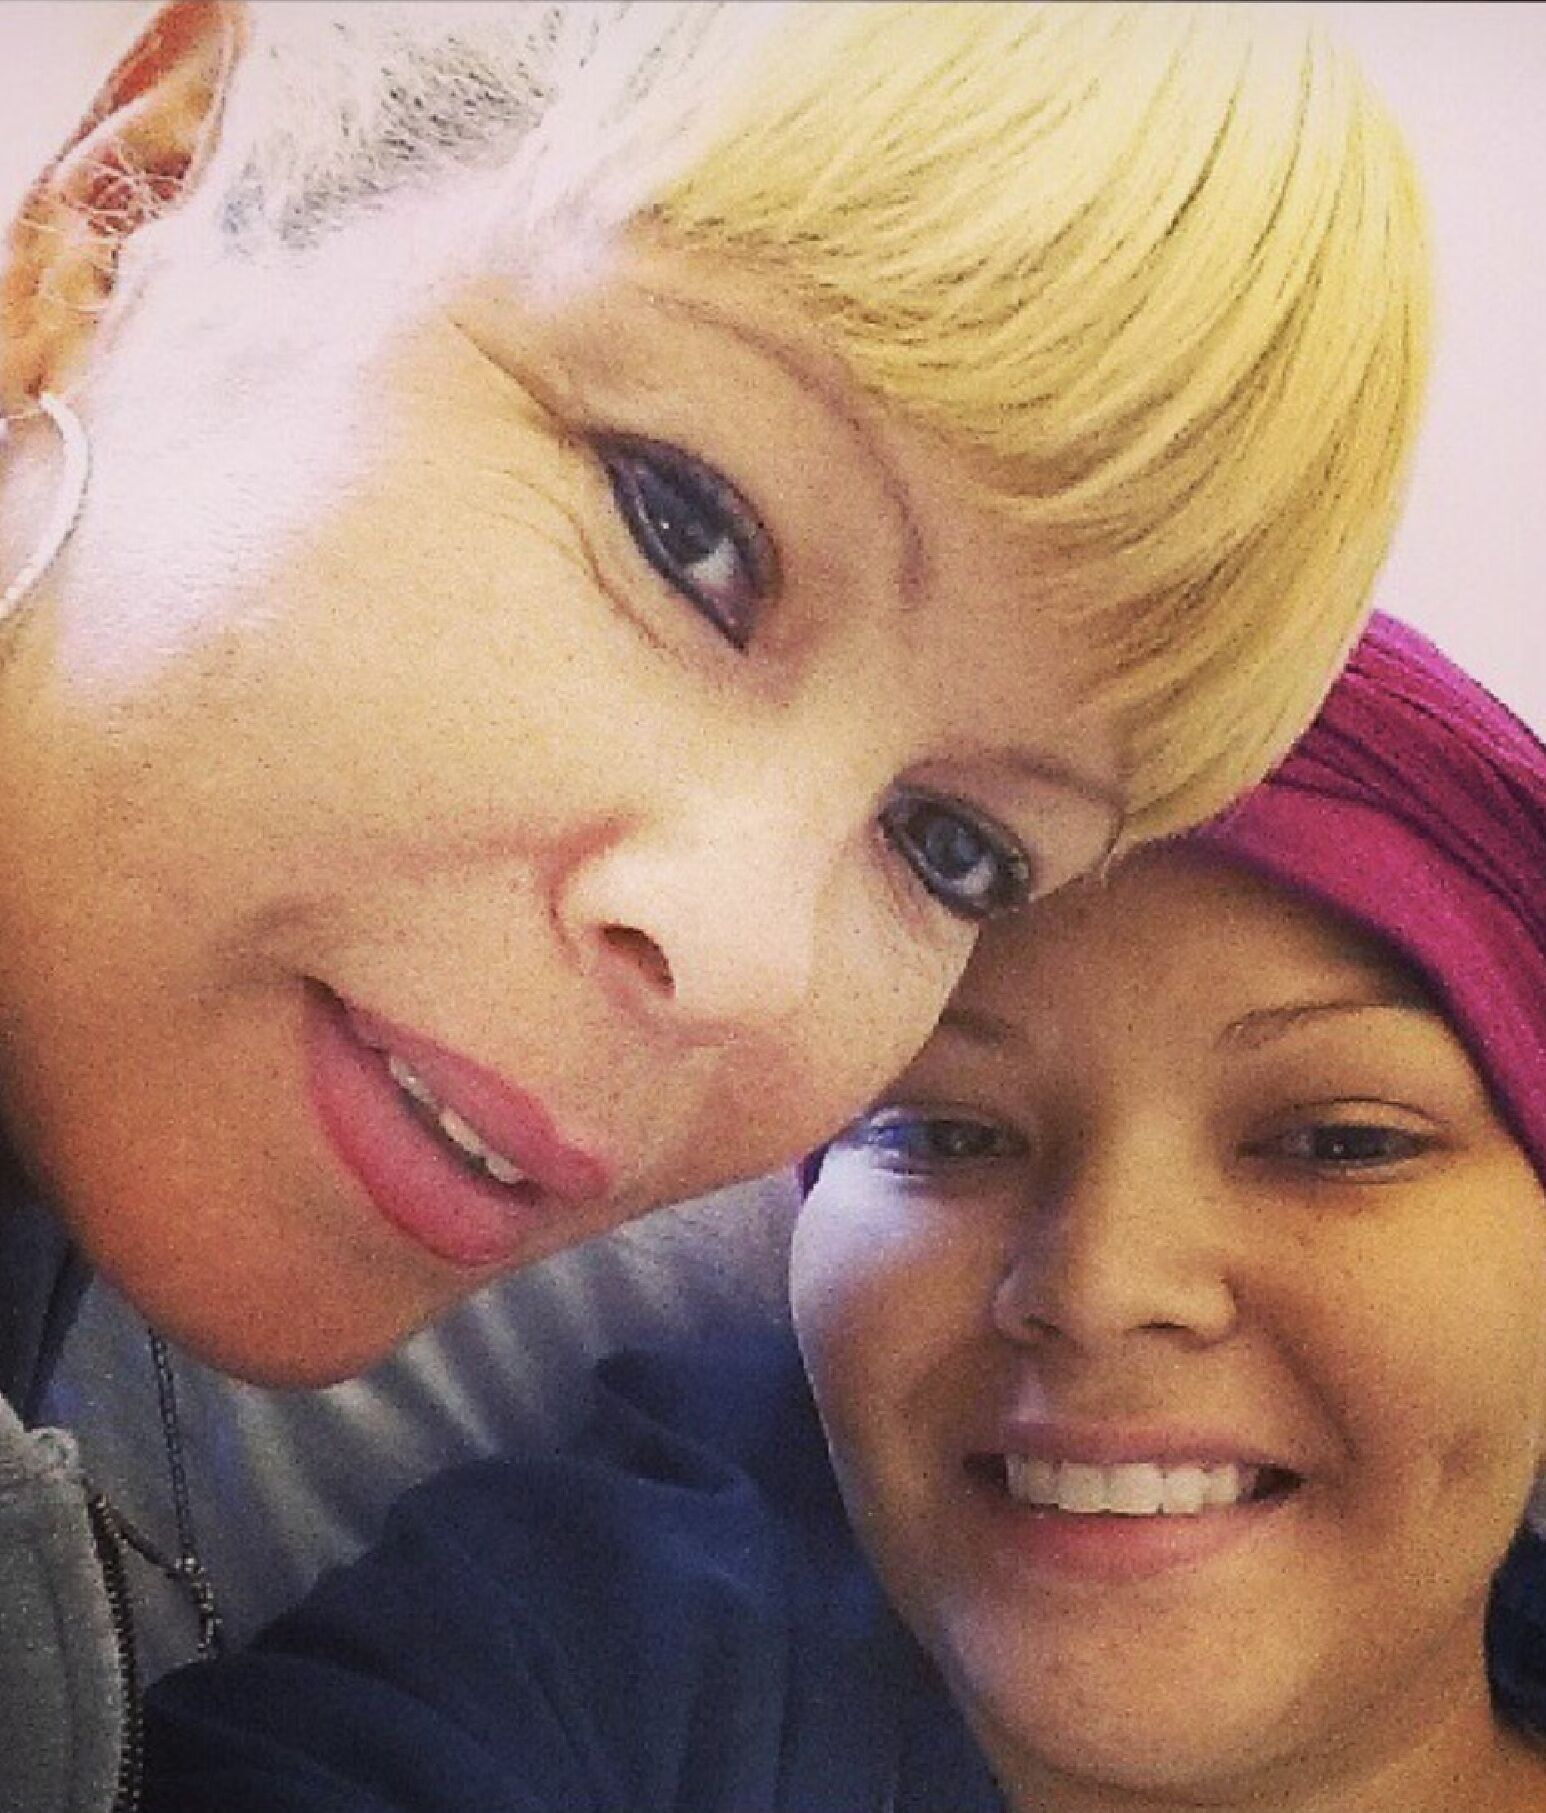 Millicent and her mom, Juanda, at a chemotherapy session